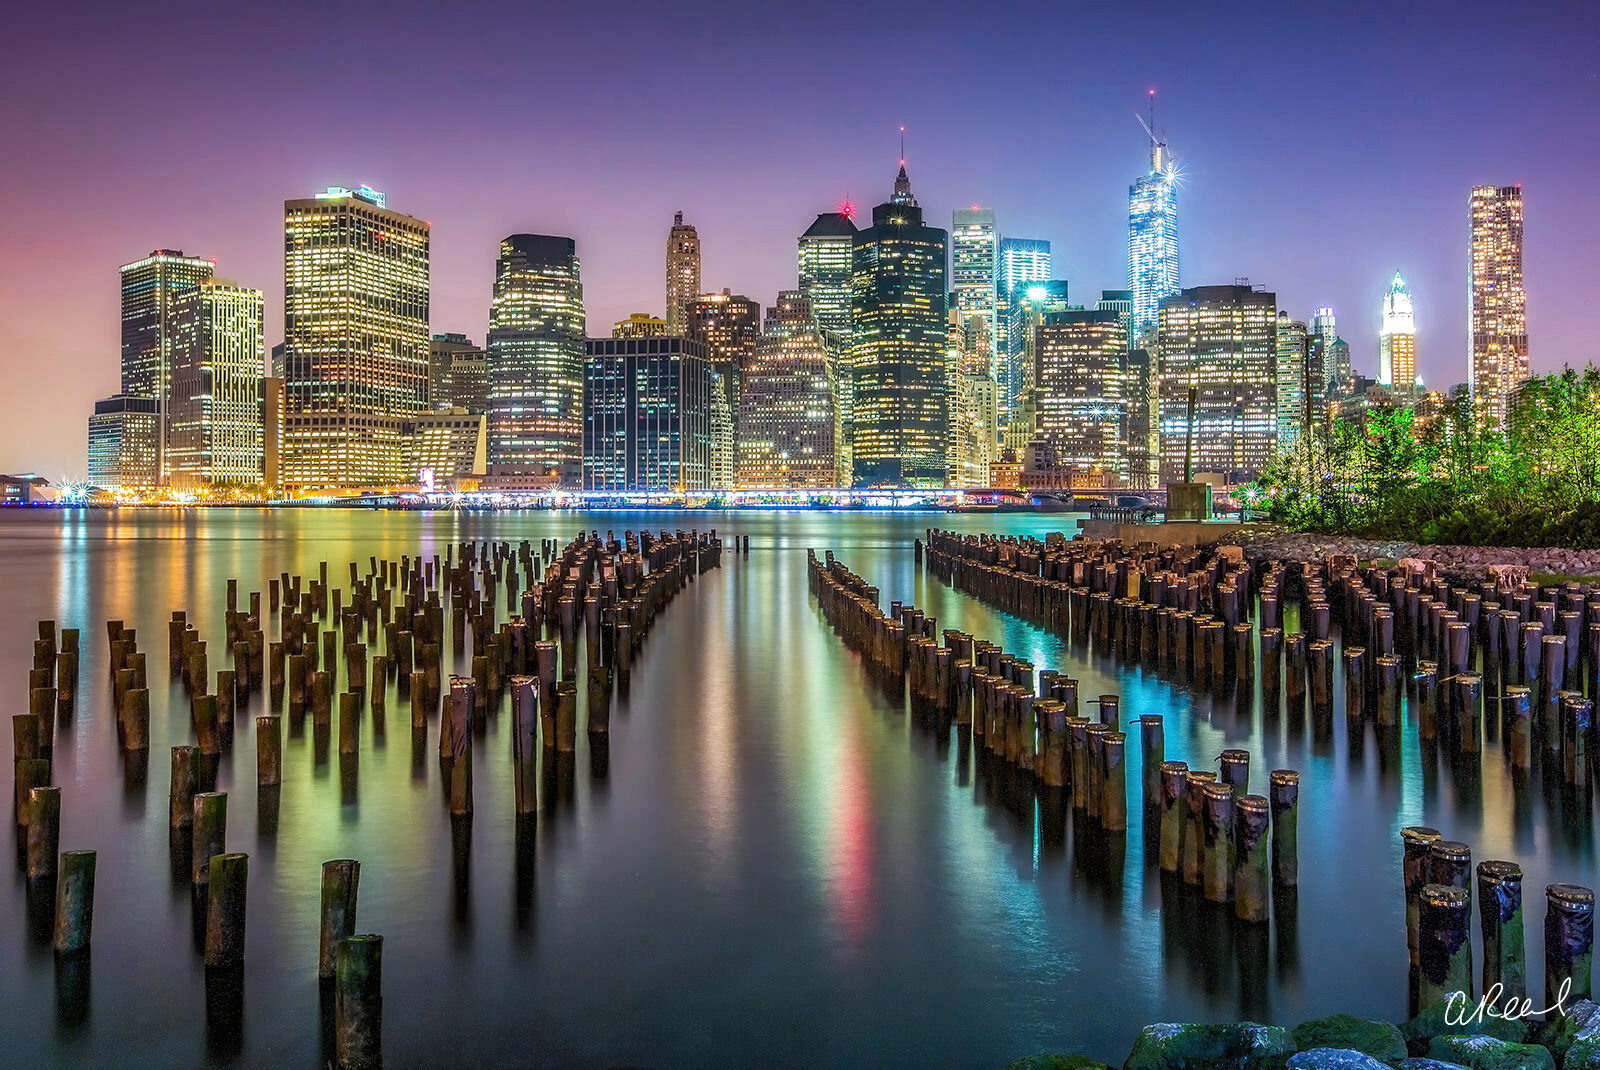 New York Reflected In The Water At Night, photo